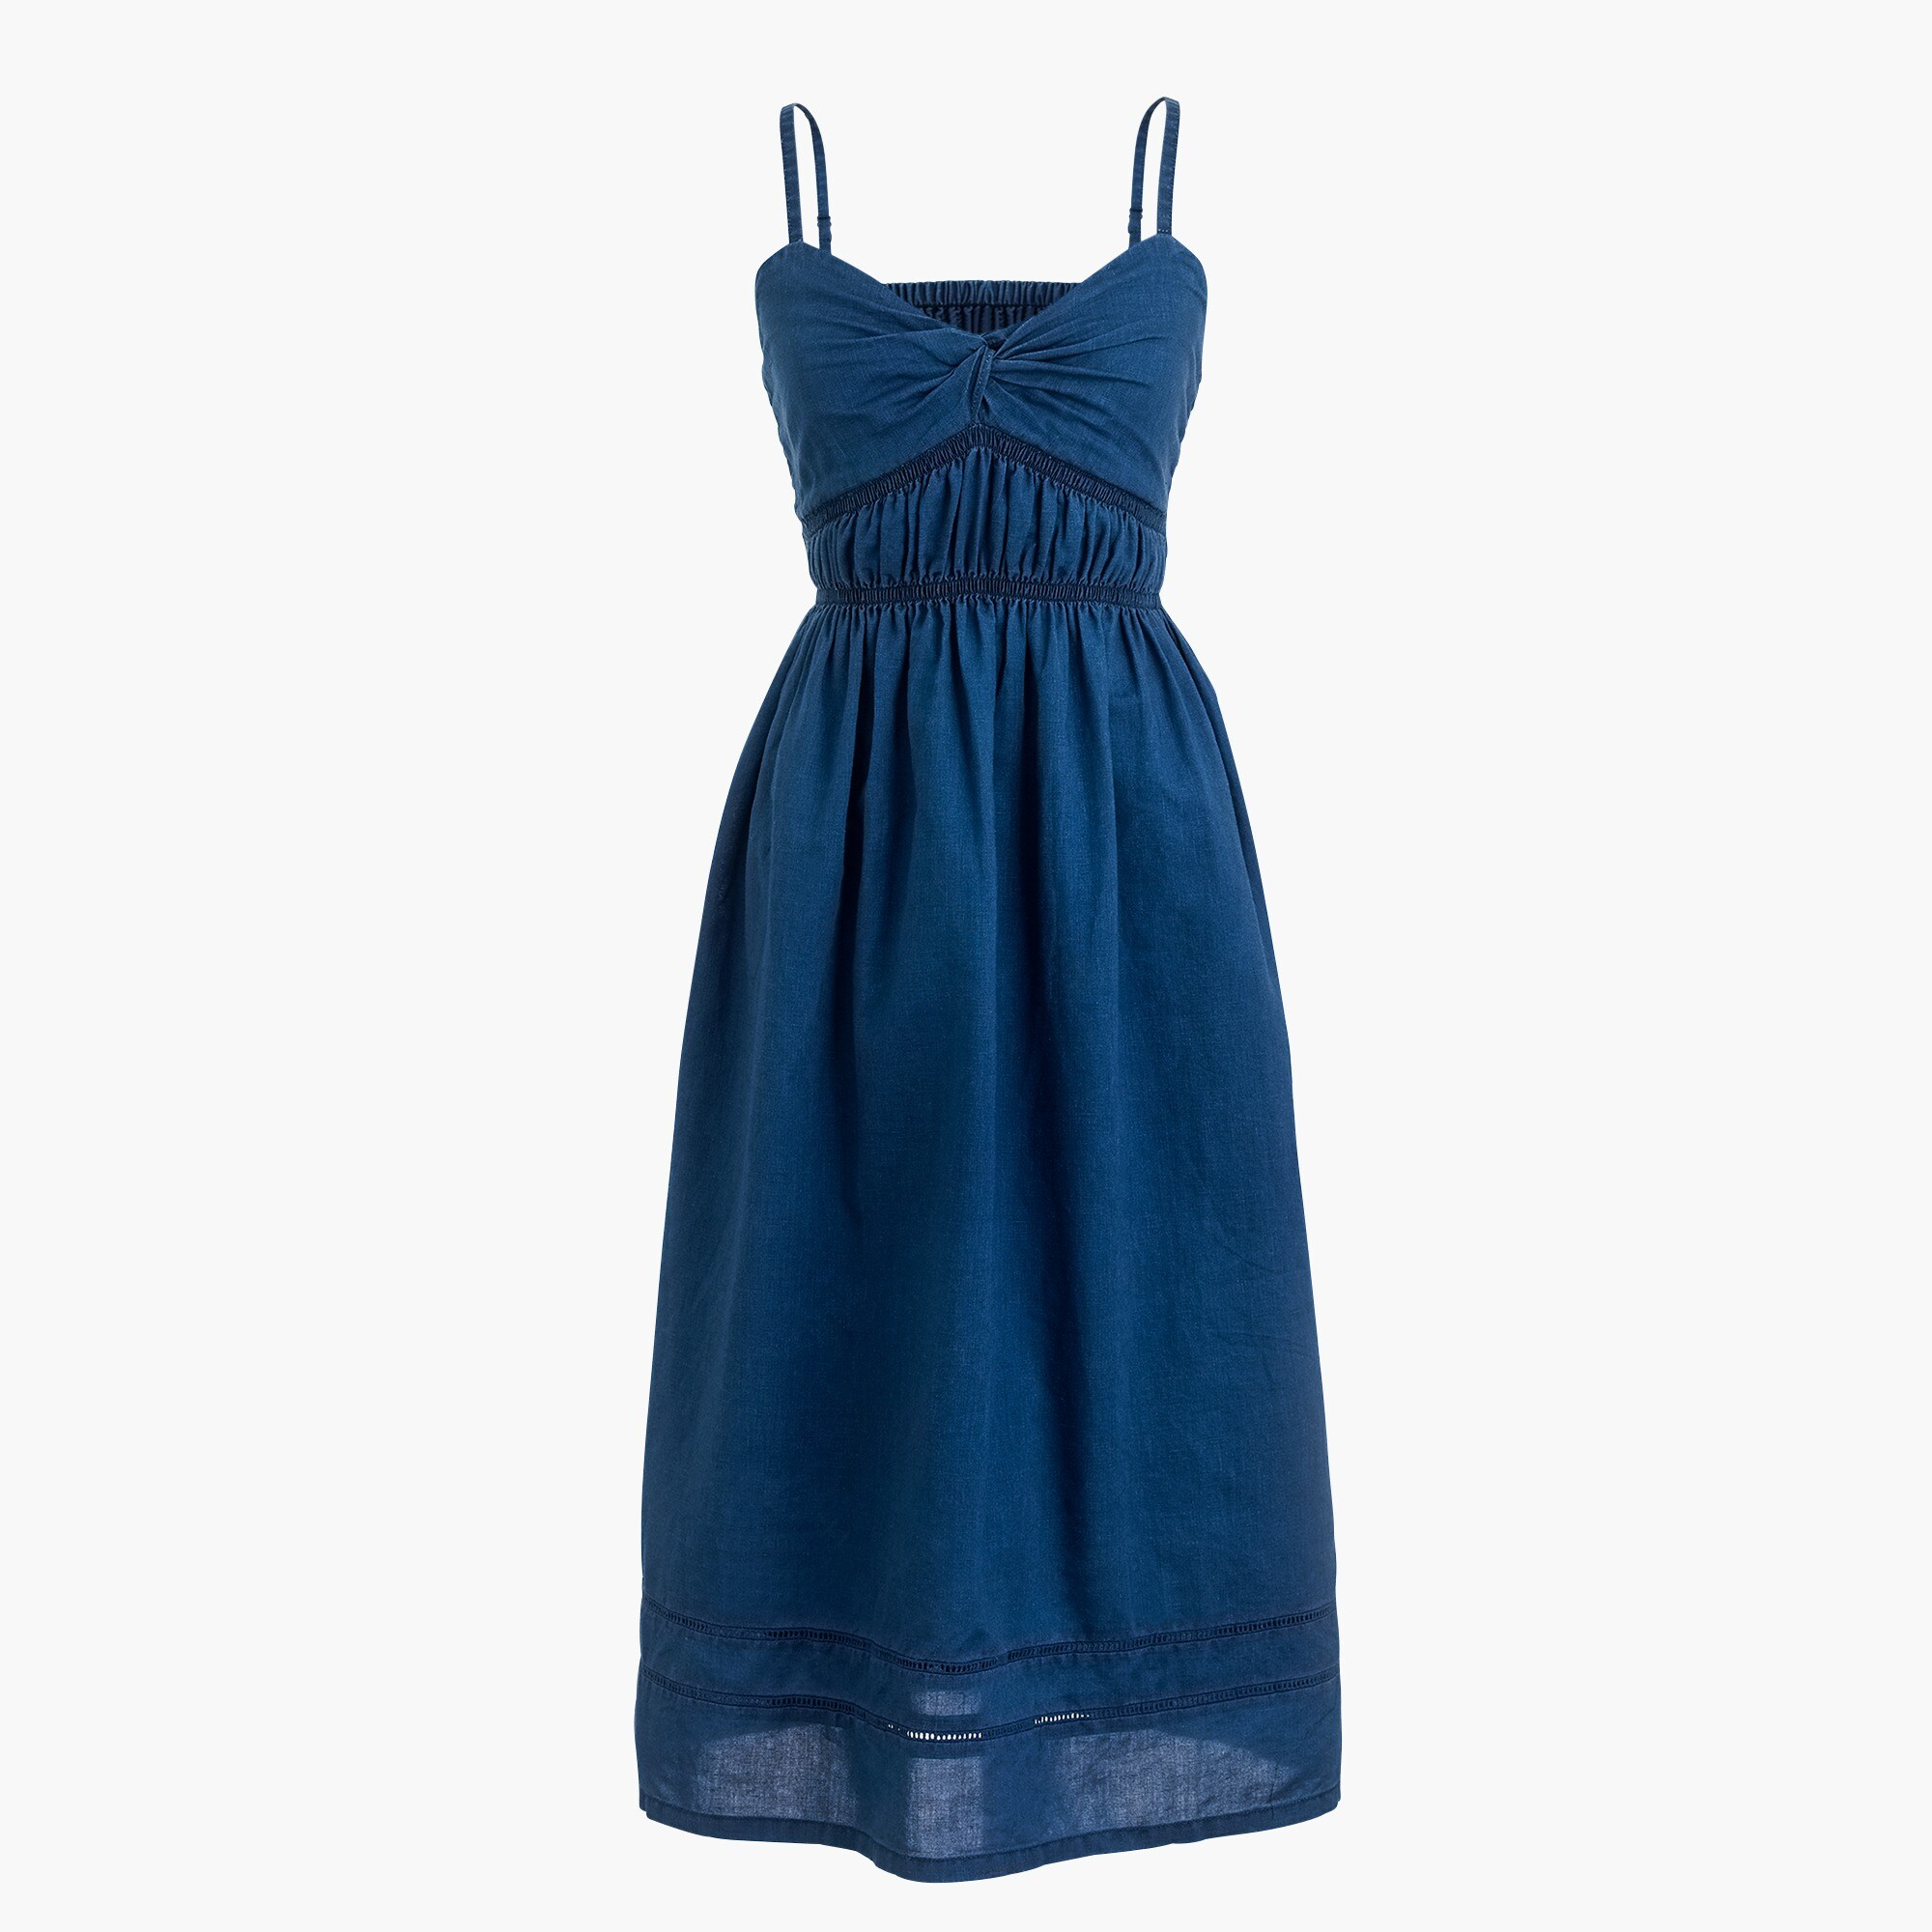 Smocked twist-front dress in indigo